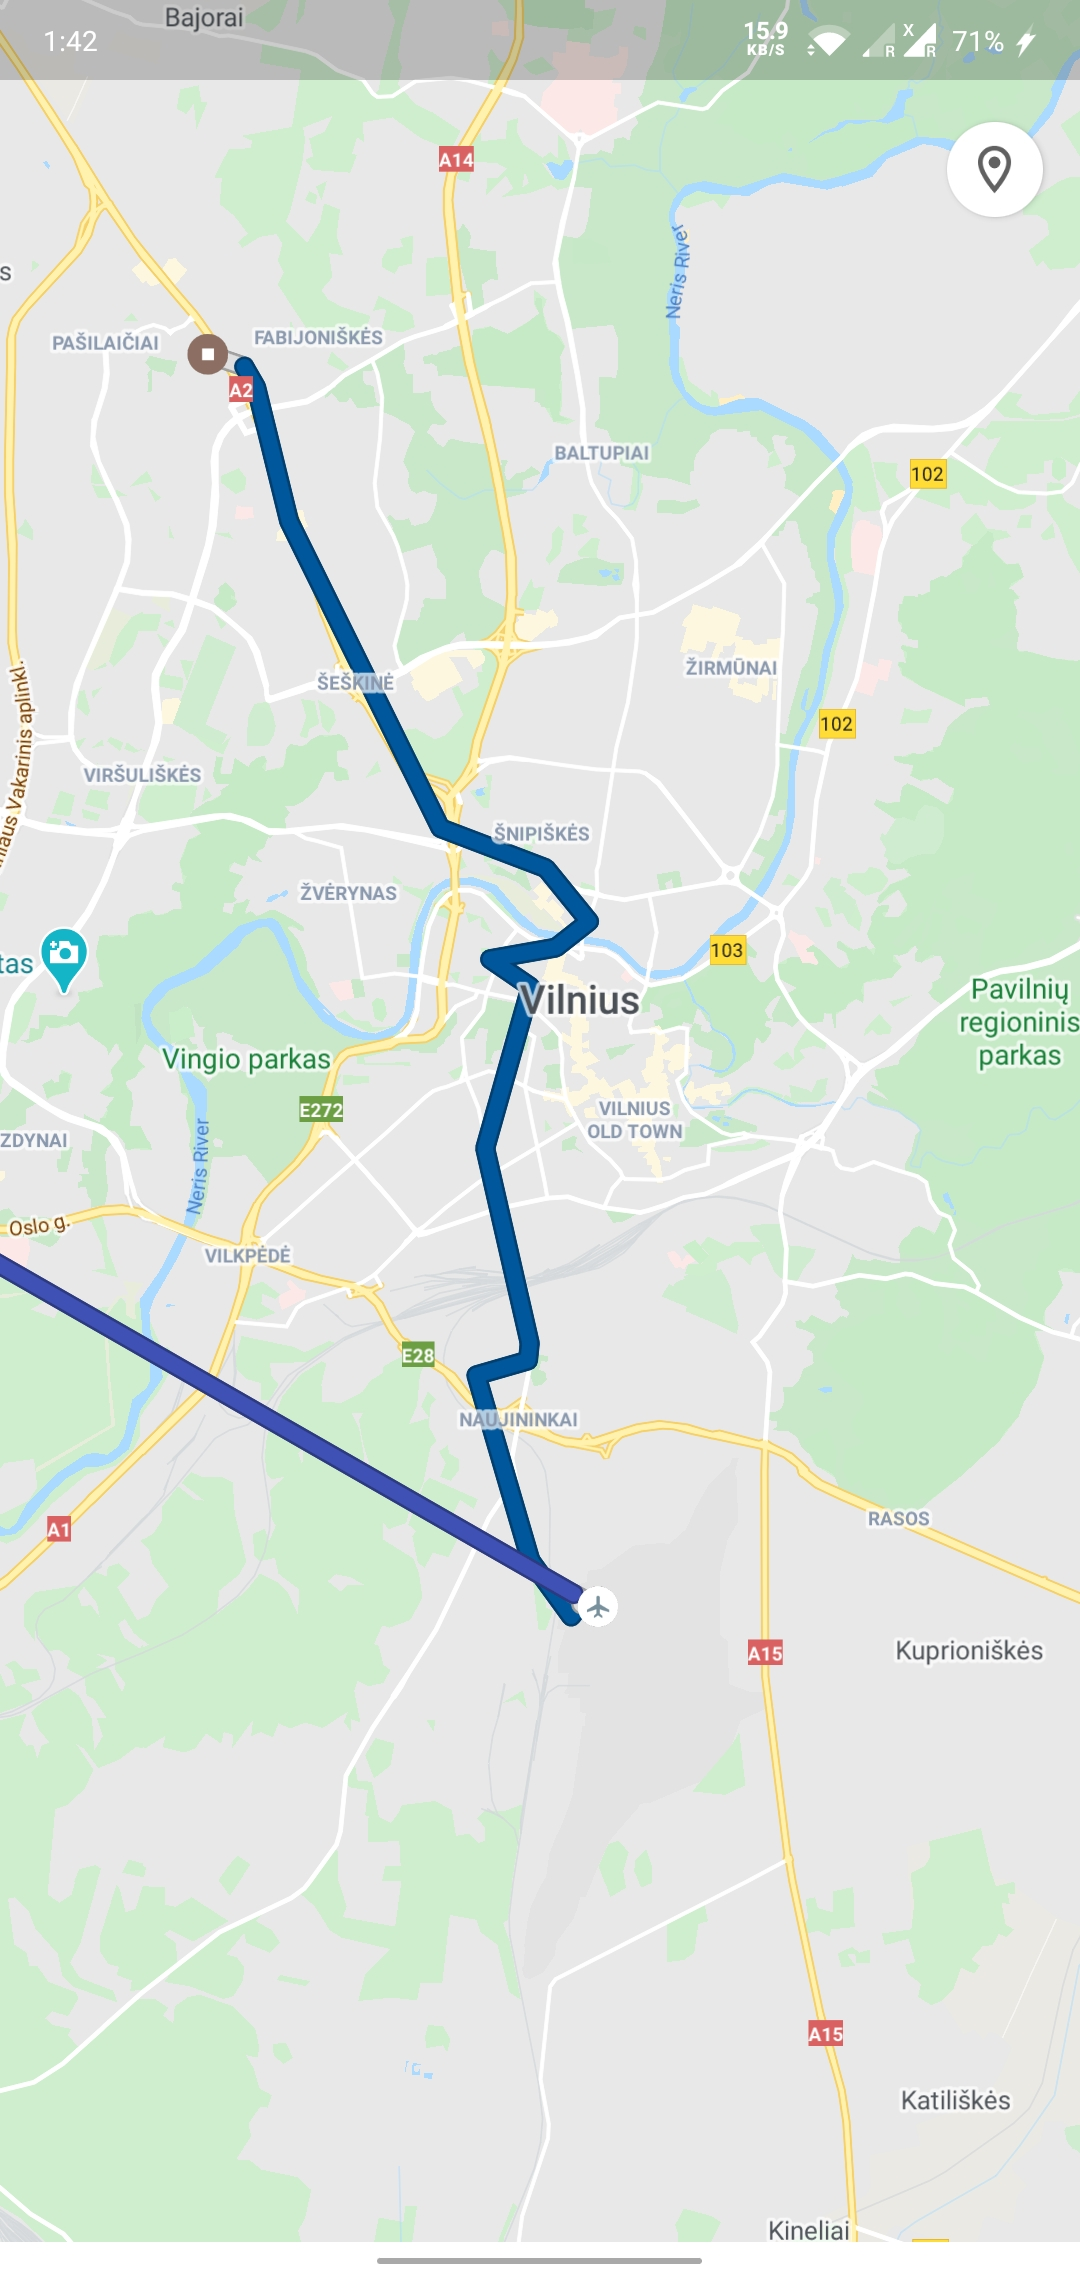 Google Maps Package Tracking : google, package, tracking, Tracking?, Google, Community